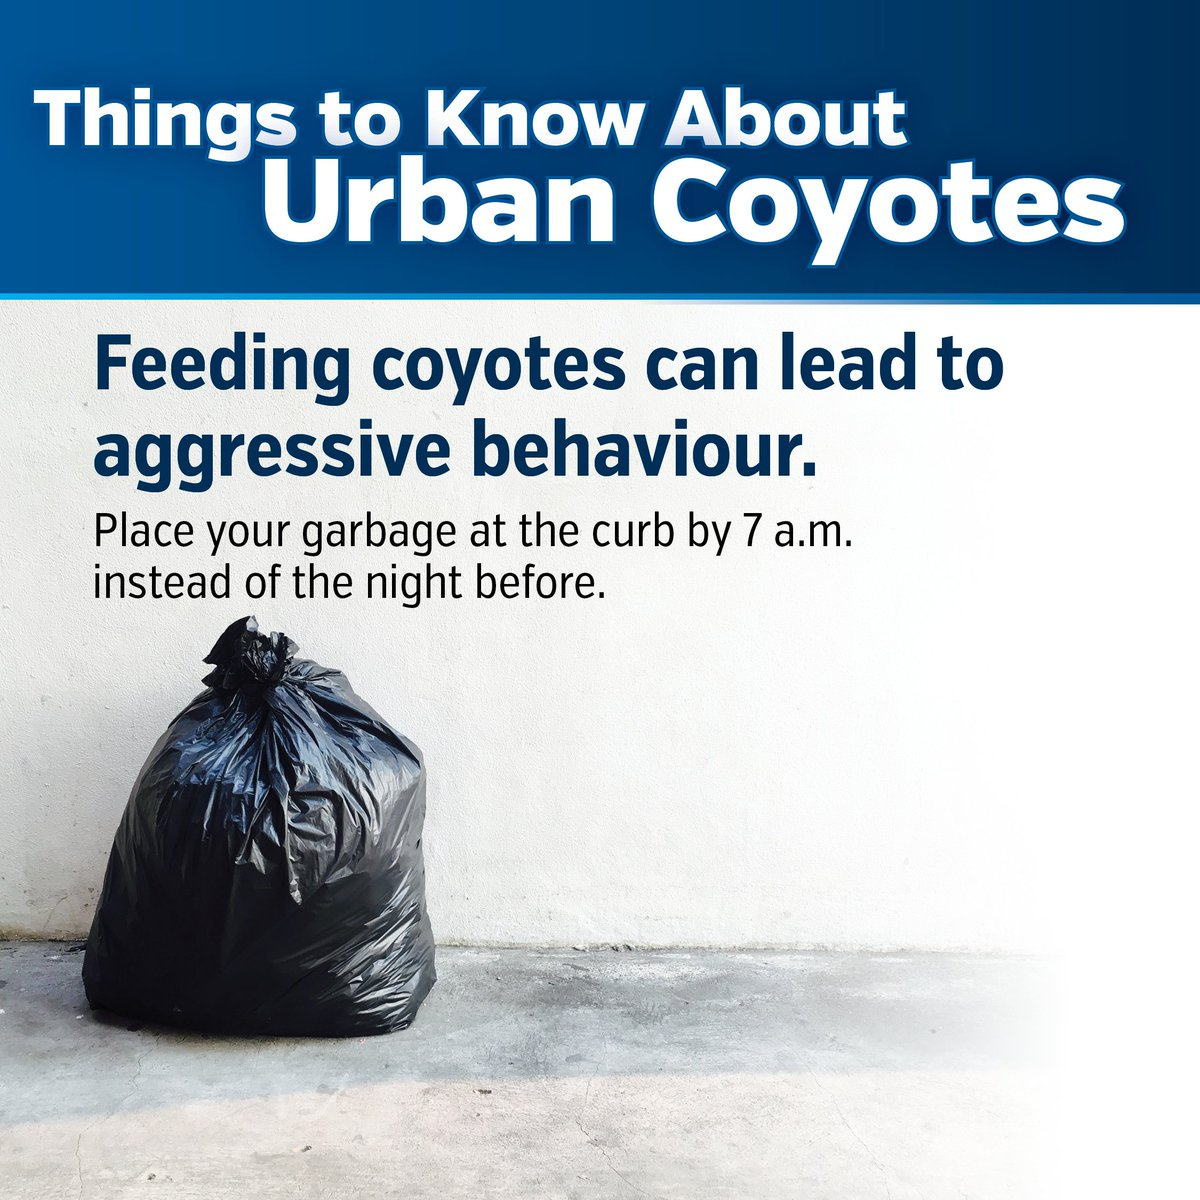 Did you know that feeding coyotes can lead to aggressive behaviour? Be sure to place your garbage at the curb by 7am instead of the night before. Learn more at http://www.burlington.ca/coyotes  #BurlON #LivingWithCoyotes